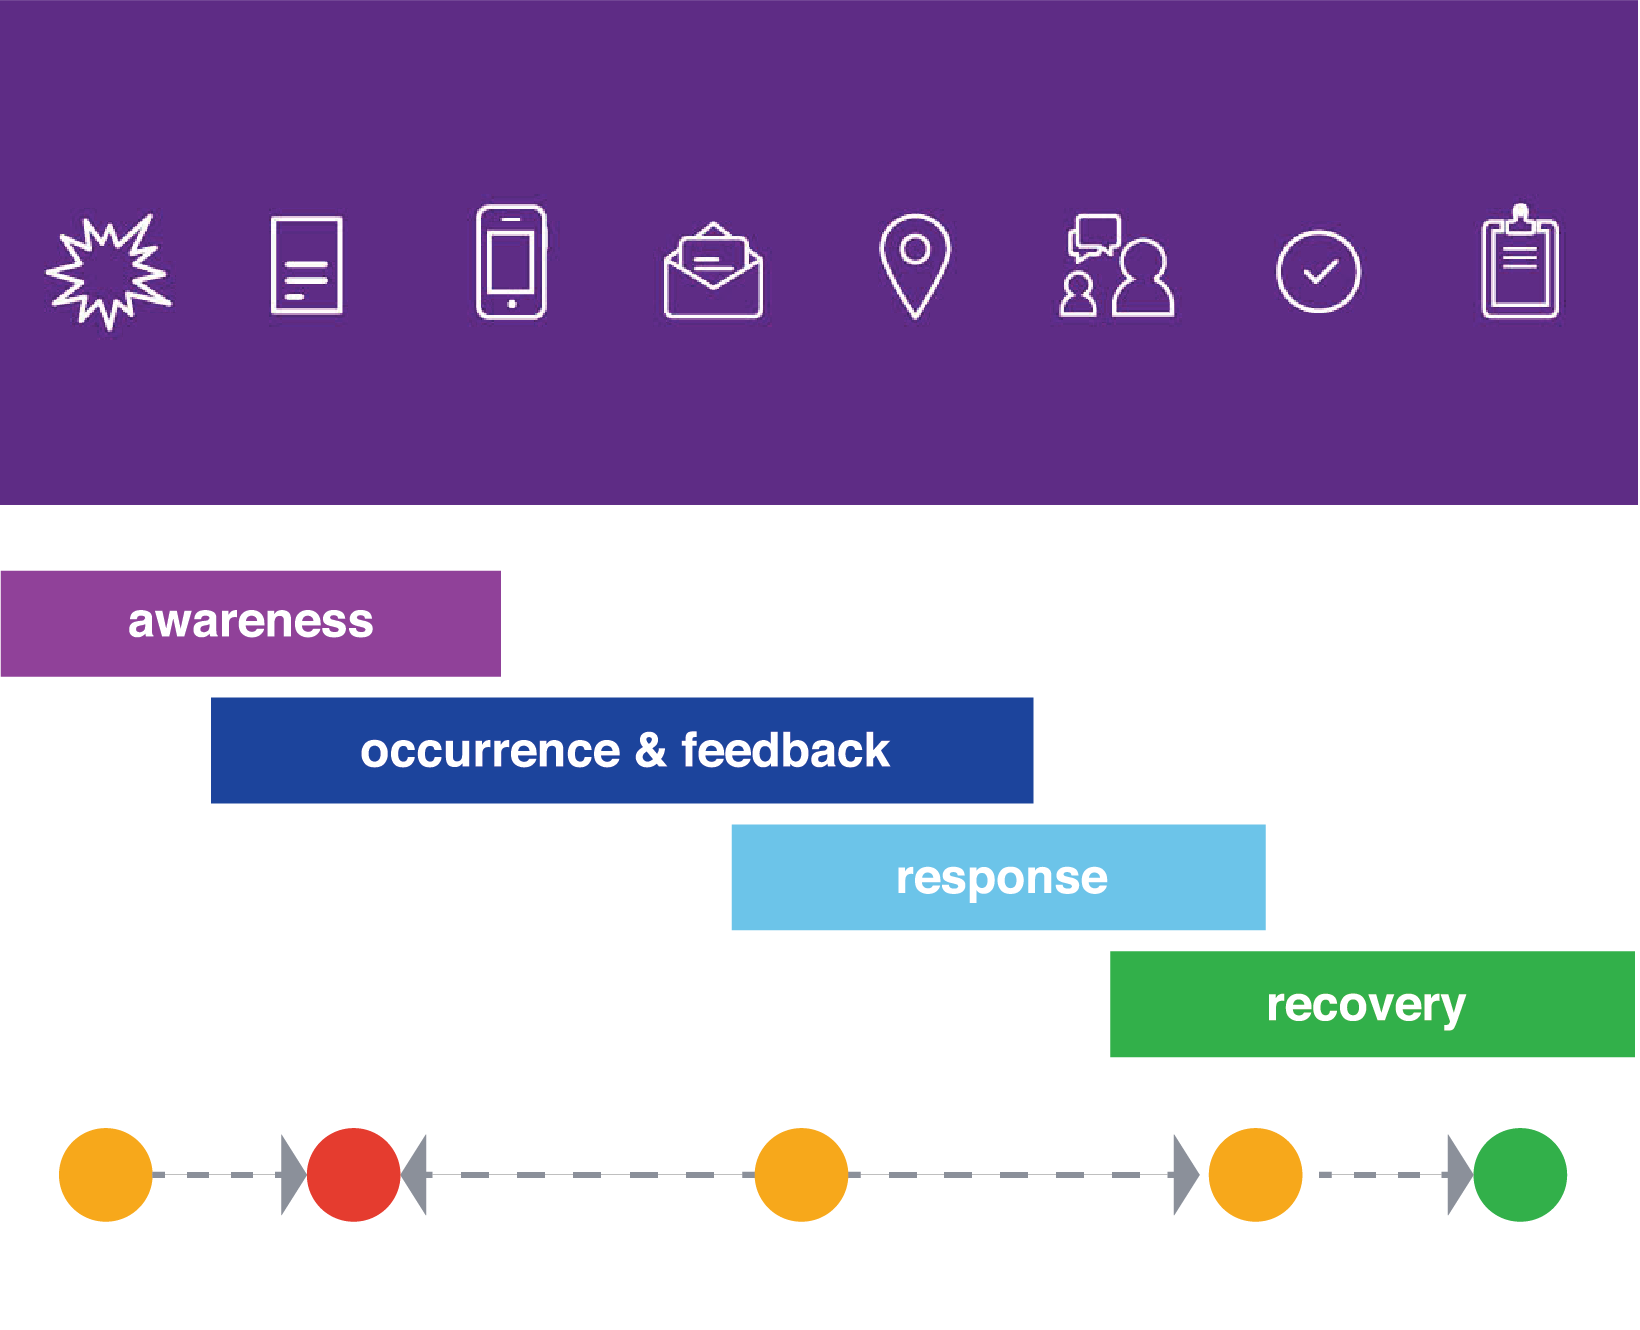 How can a hospital improve its CX? - A service design project to assess the operational process of real time service recovery within clinical environmentsRole: Service Design,Digital Management, & Data analysis